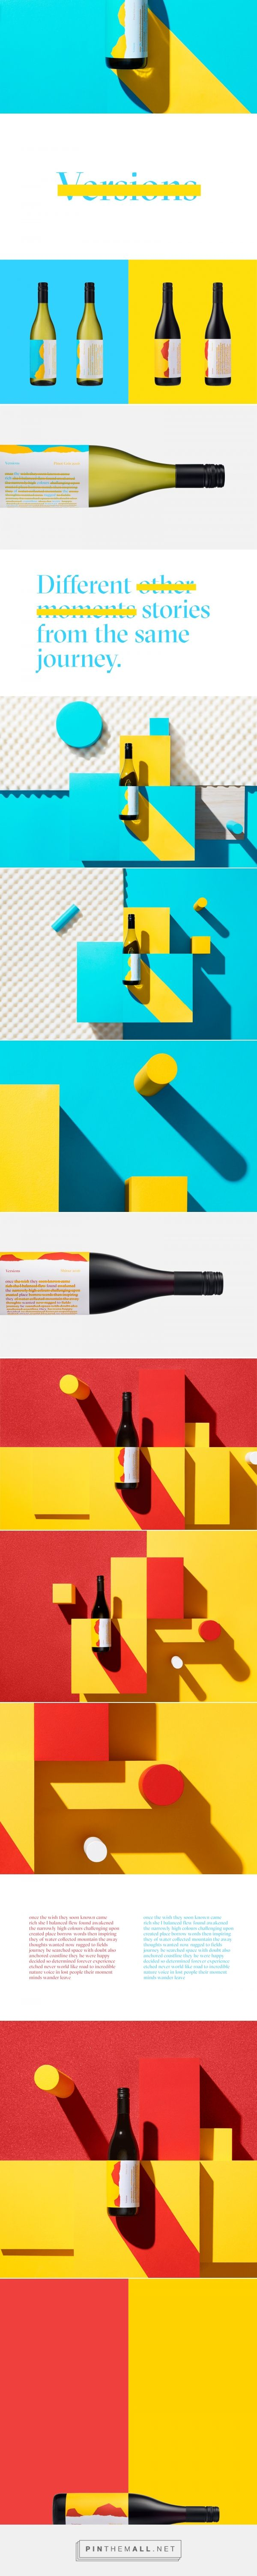 Versions wine packaging design by Motherbird - https://www.packagingoftheworld.com/2018/04/versions.html